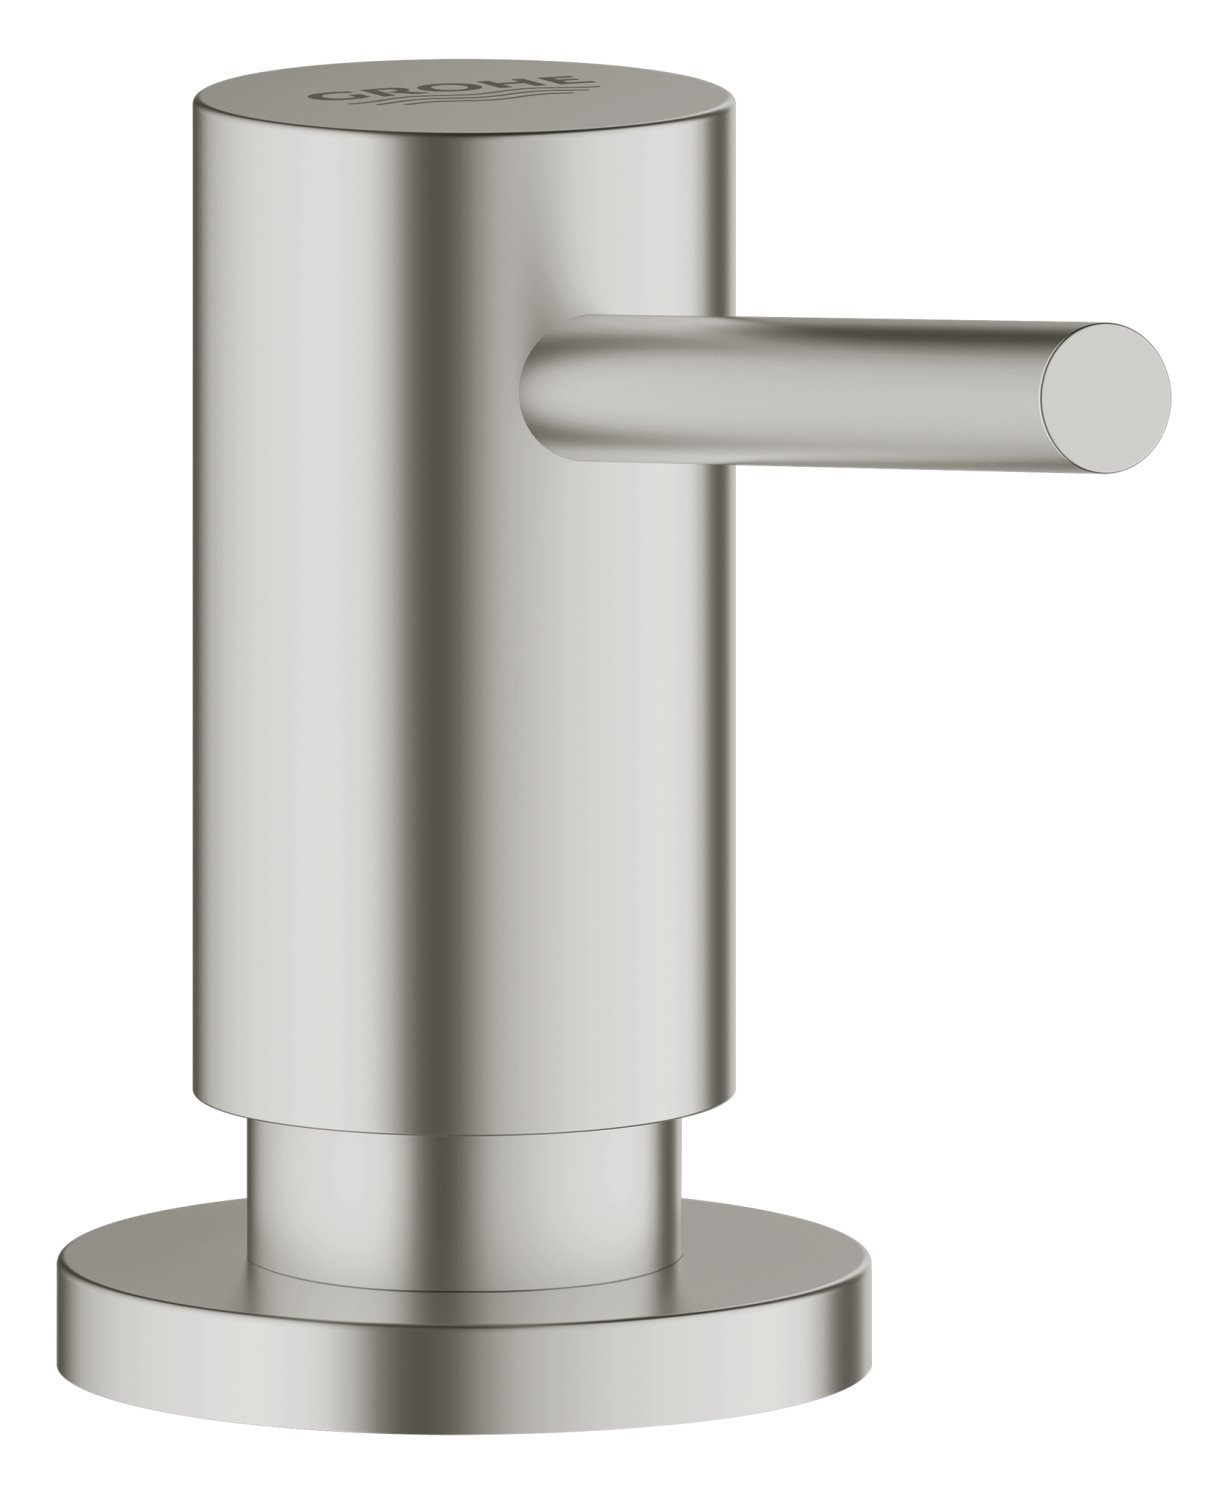 Cosmopolitan Soap/Lotion Dispenser by GROHE